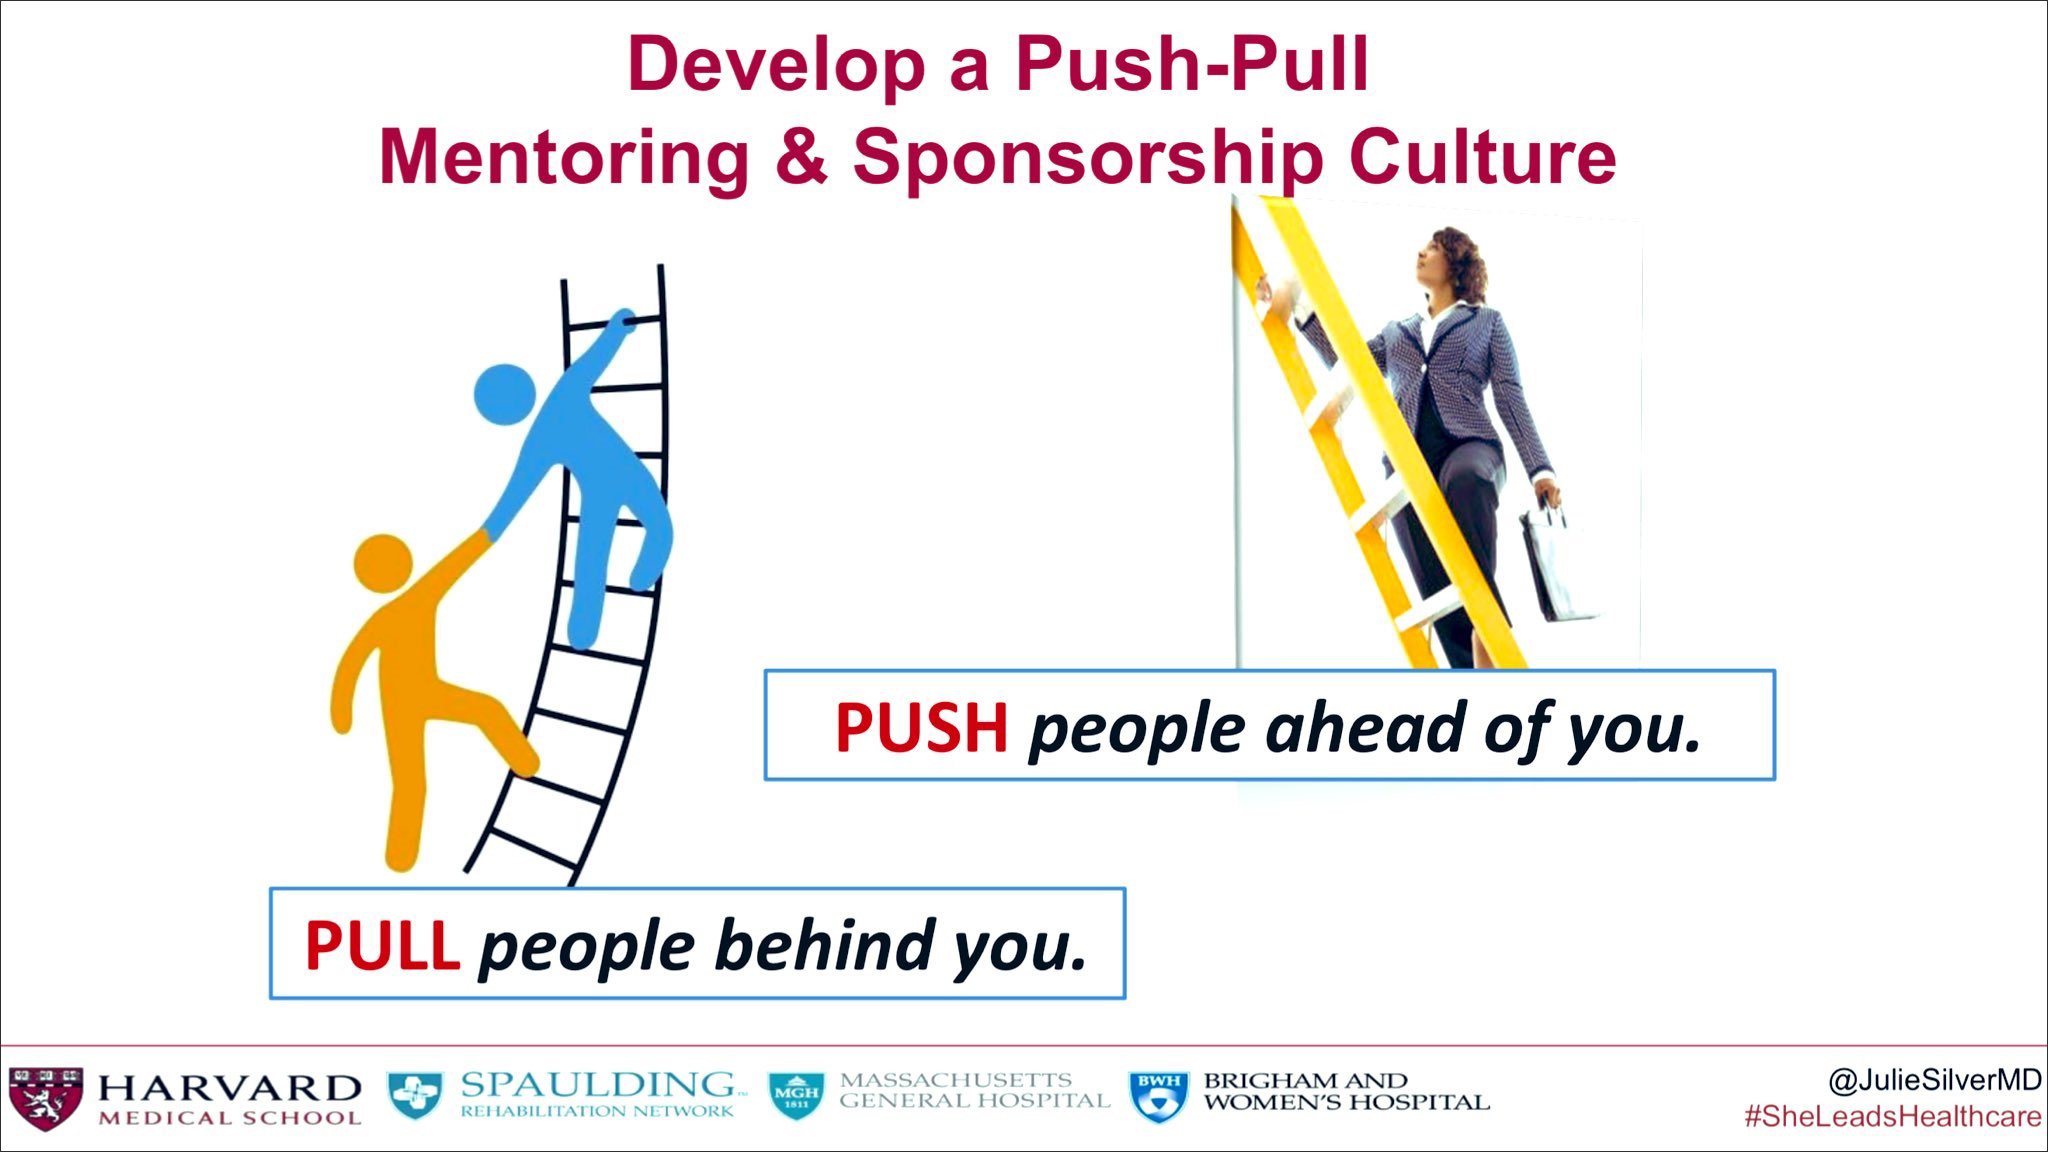 """The title reads: Develop a Push-Pull Mentoring & Sponsorship Culture. There are two images of people climbing ladders with the words """" PUSH people ahead of you and PULL people behind you."""